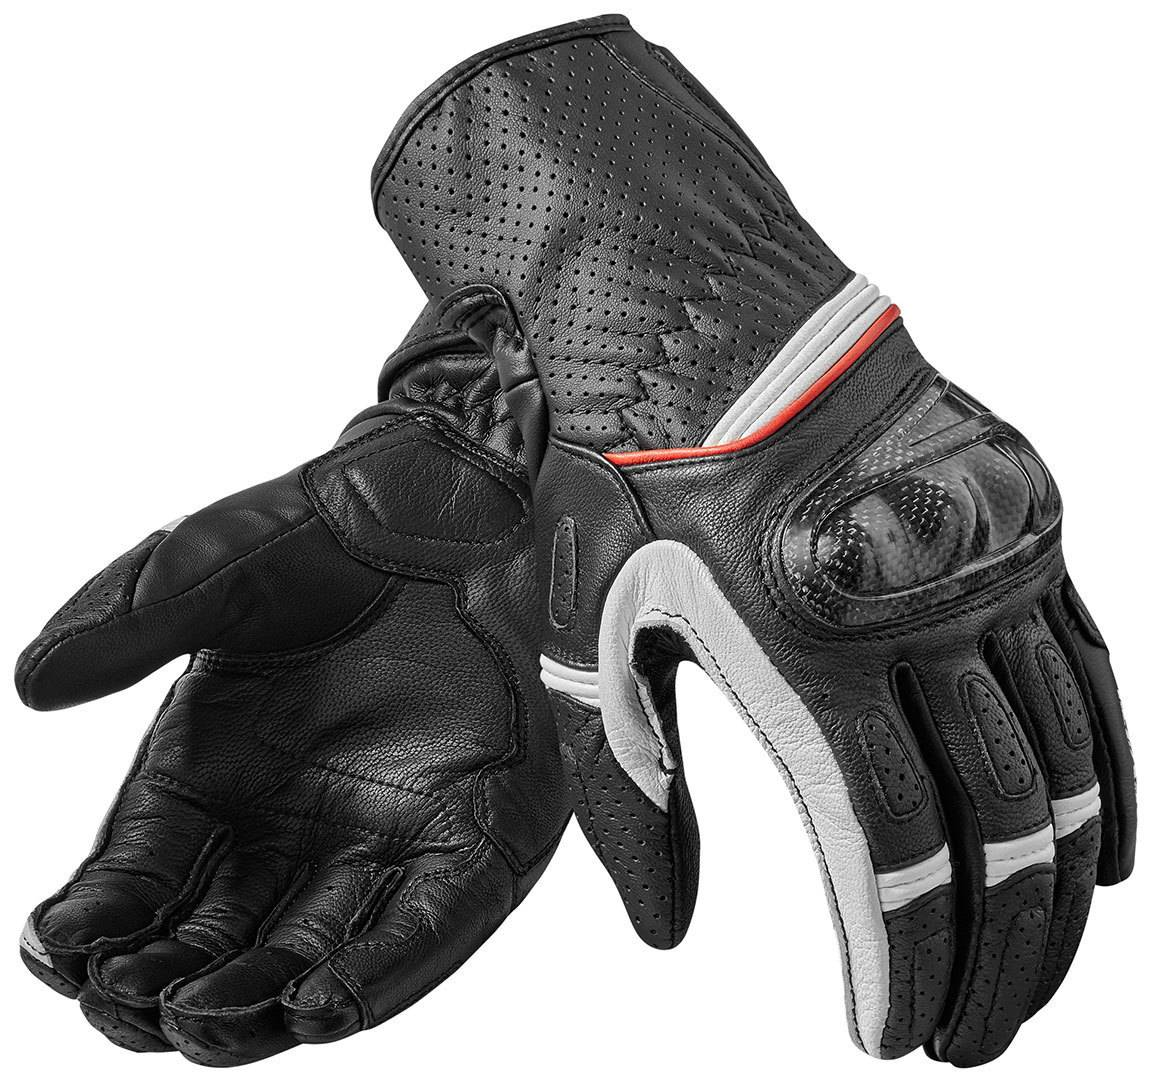 Revit Chevron 2 Guantes Negro/Blanco 2XL